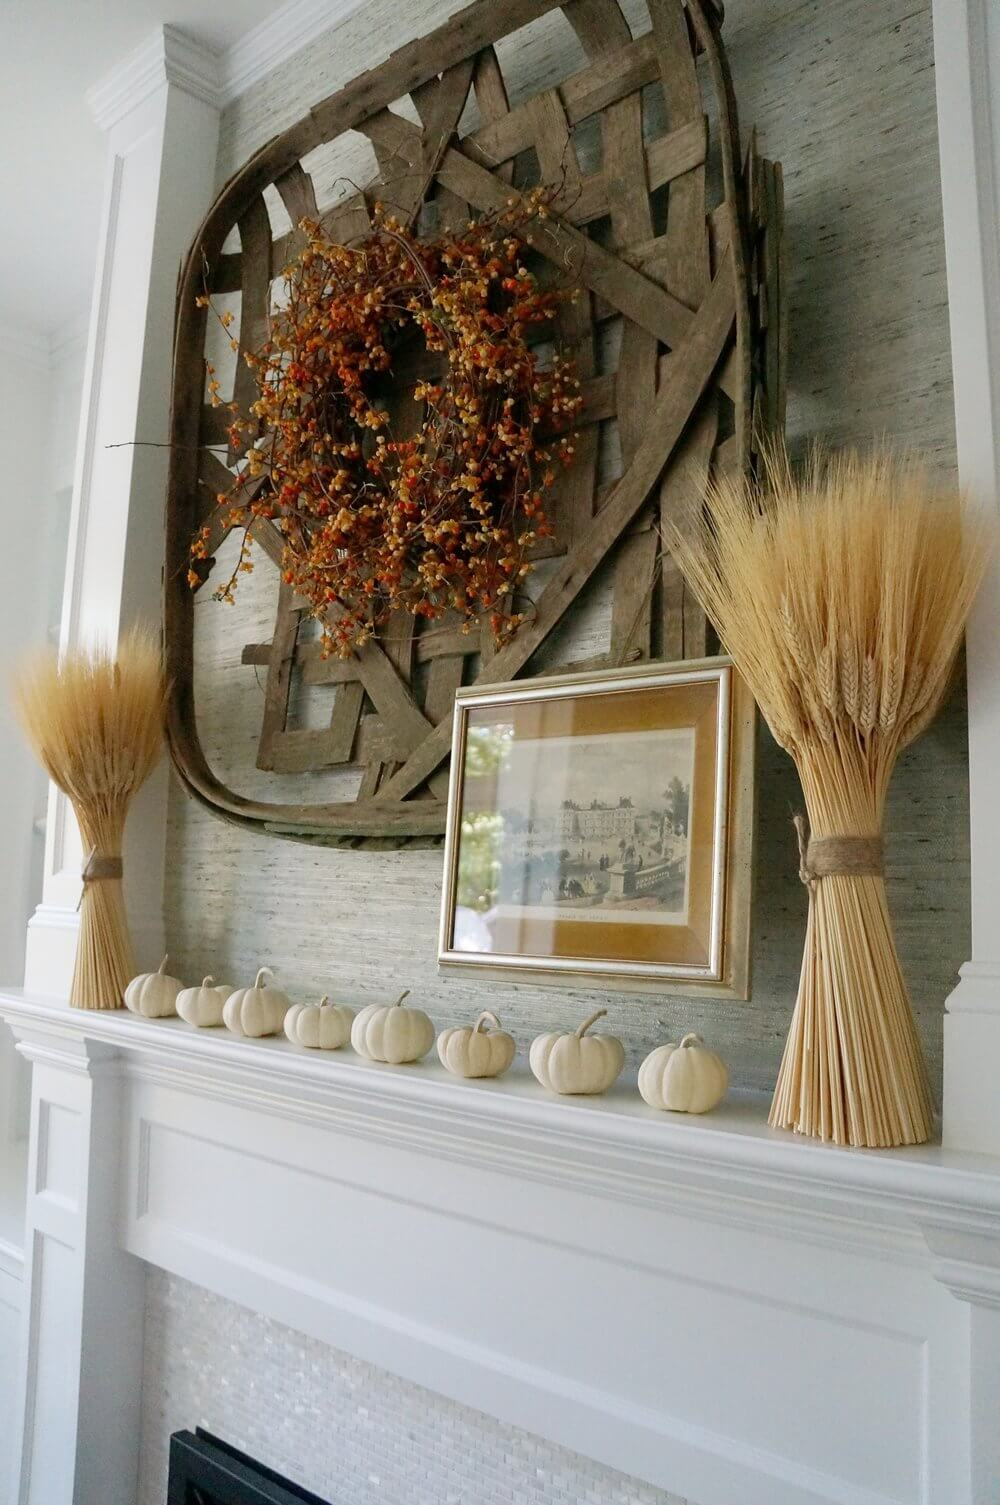 Wheat and an Old Winnowing Basket